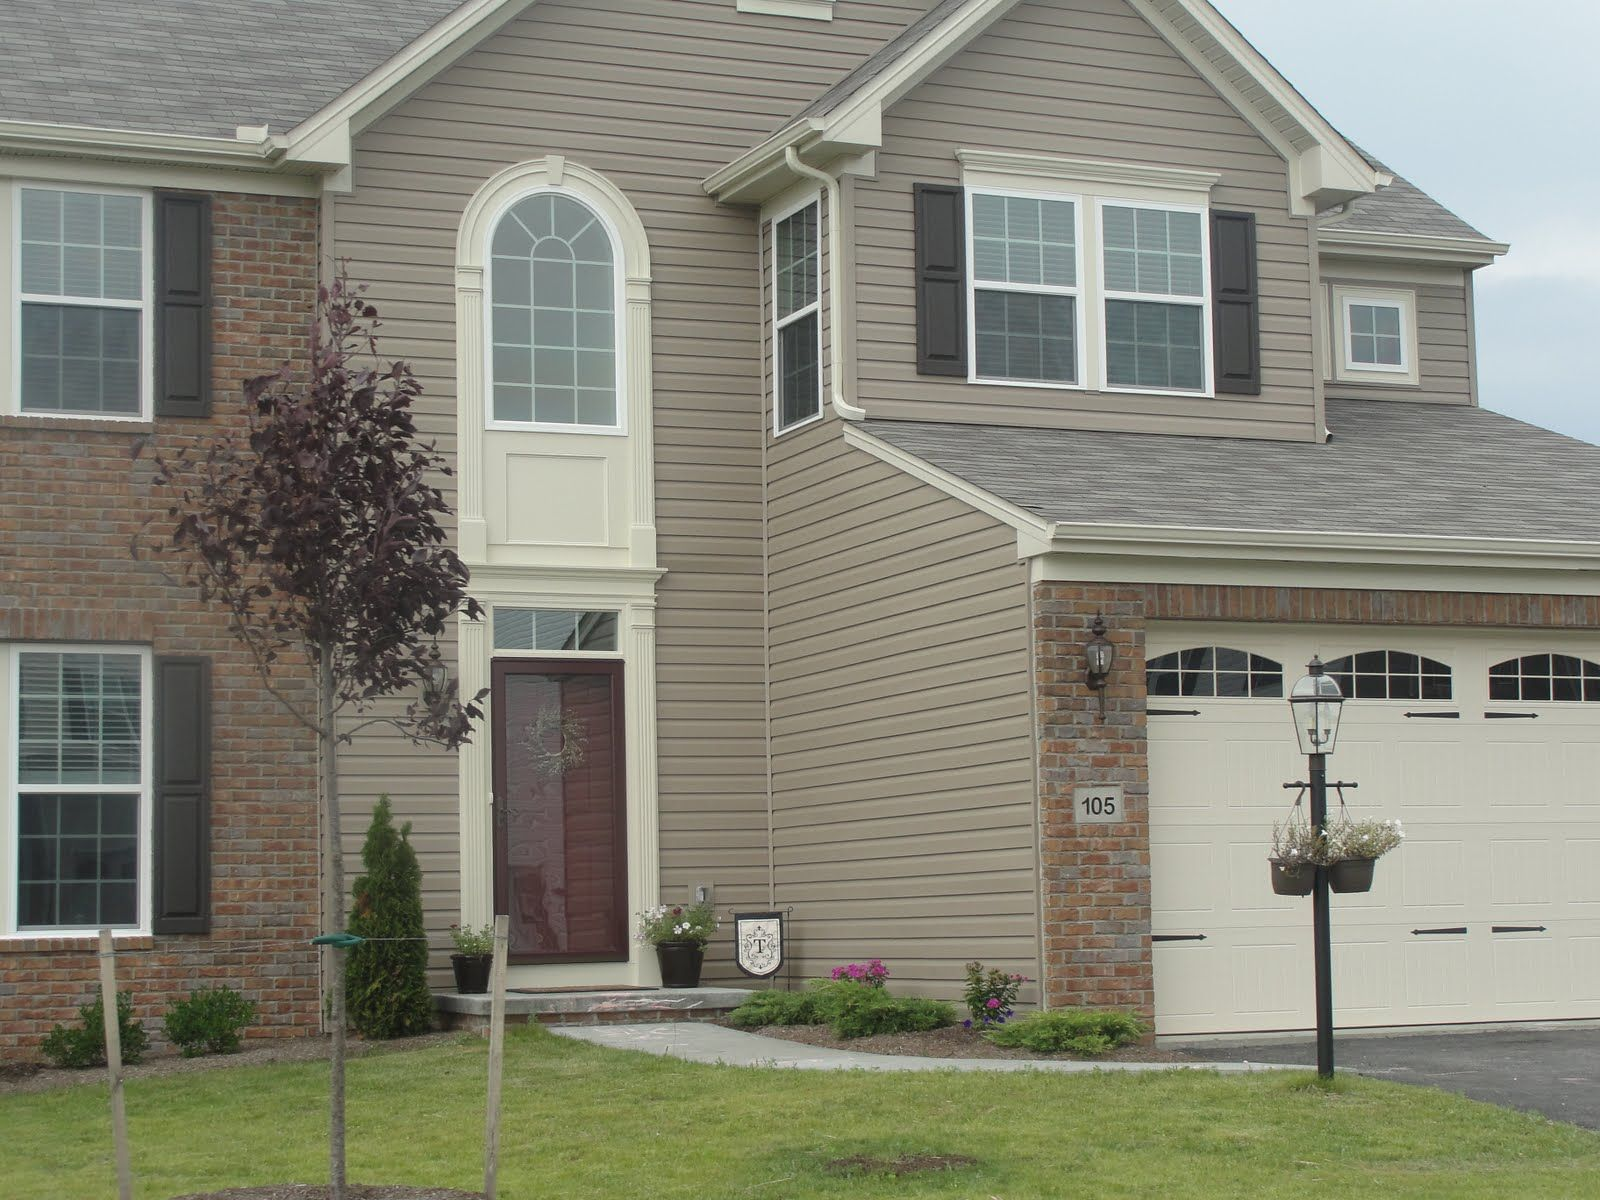 Stone Mountain Clay Siding Bone White Trim And Red Door This Is What We Are Leaning Towards